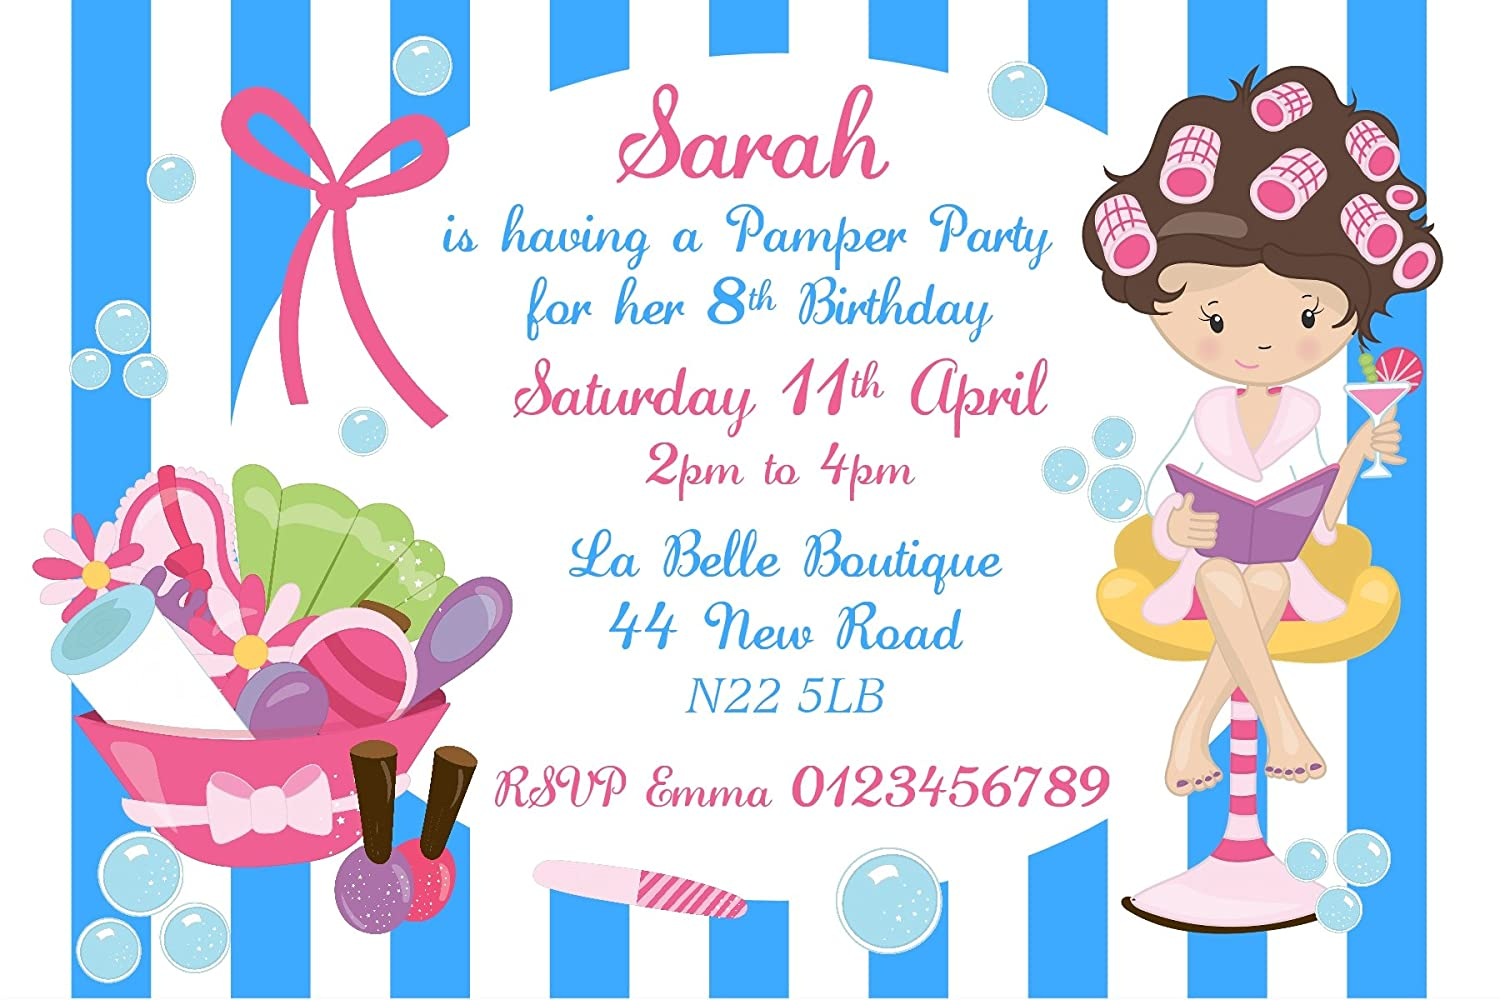 Personalised Birthday Pamper Party Invitations x10: Amazon.co.uk ...